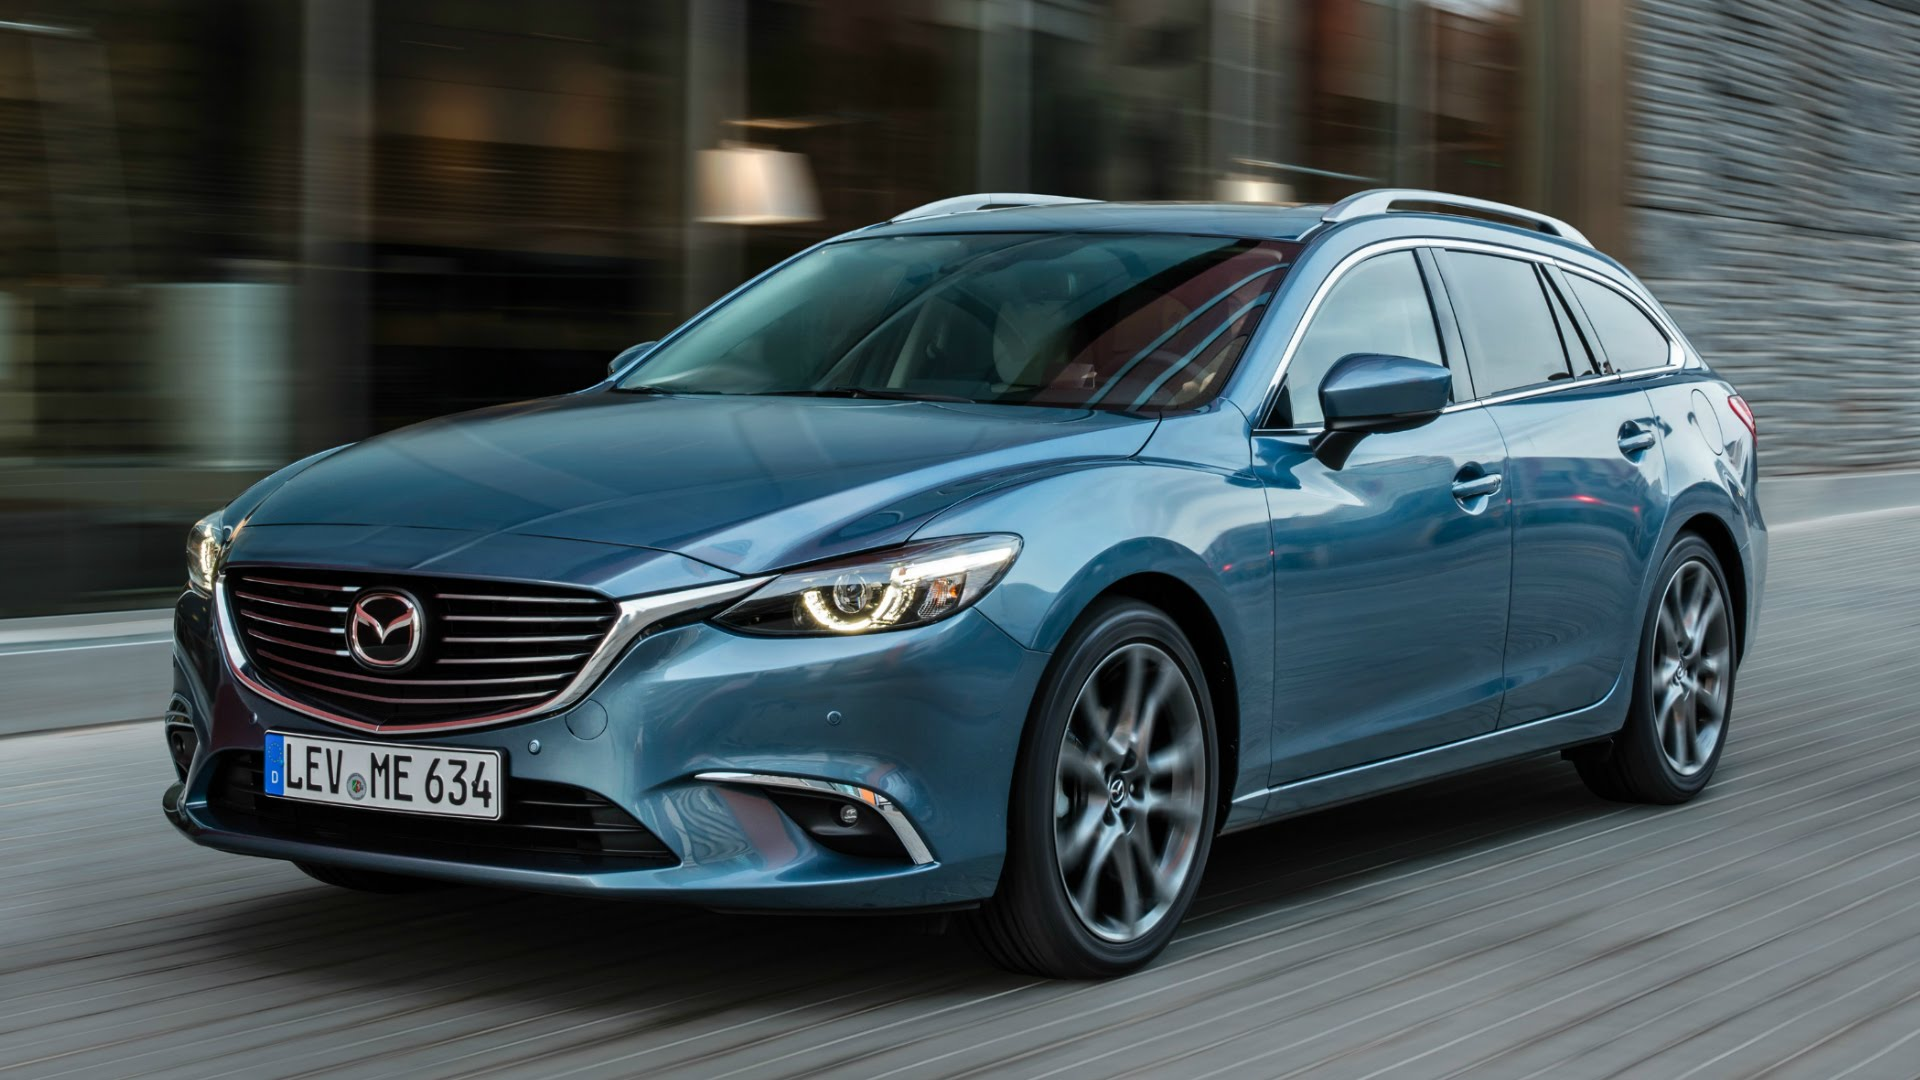 http://carsot.com/images/mazda-6-iii-restyling-2015-now-station-wagon-5-door-interior-2.jpg